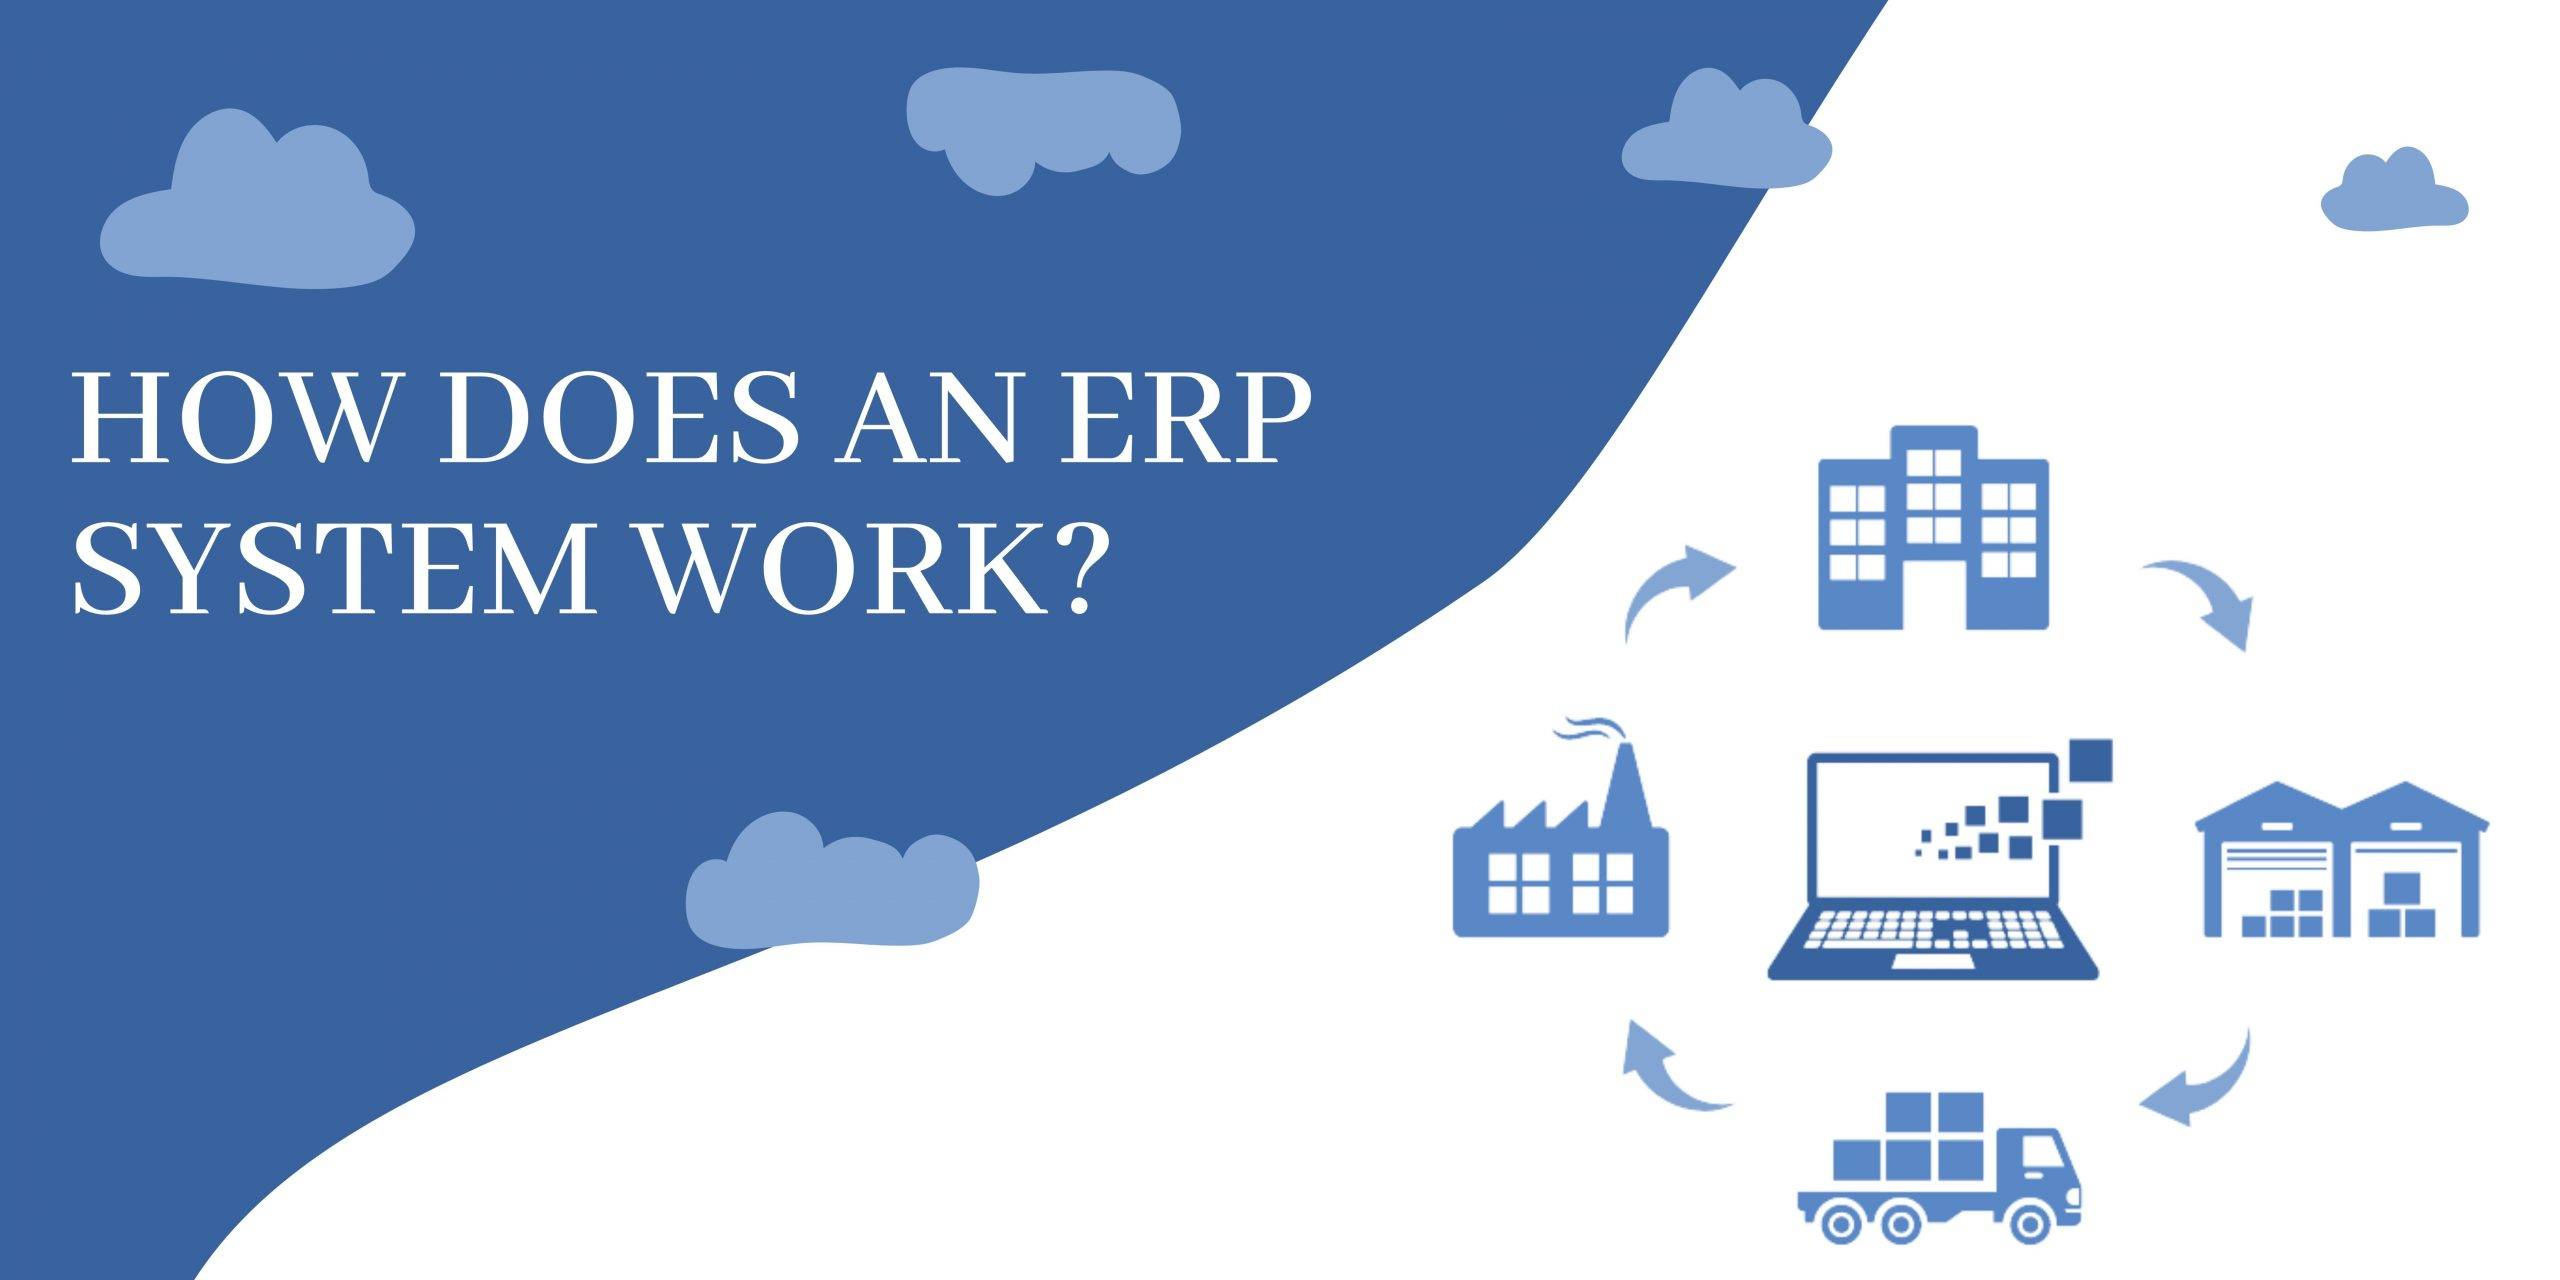 erp works scaled